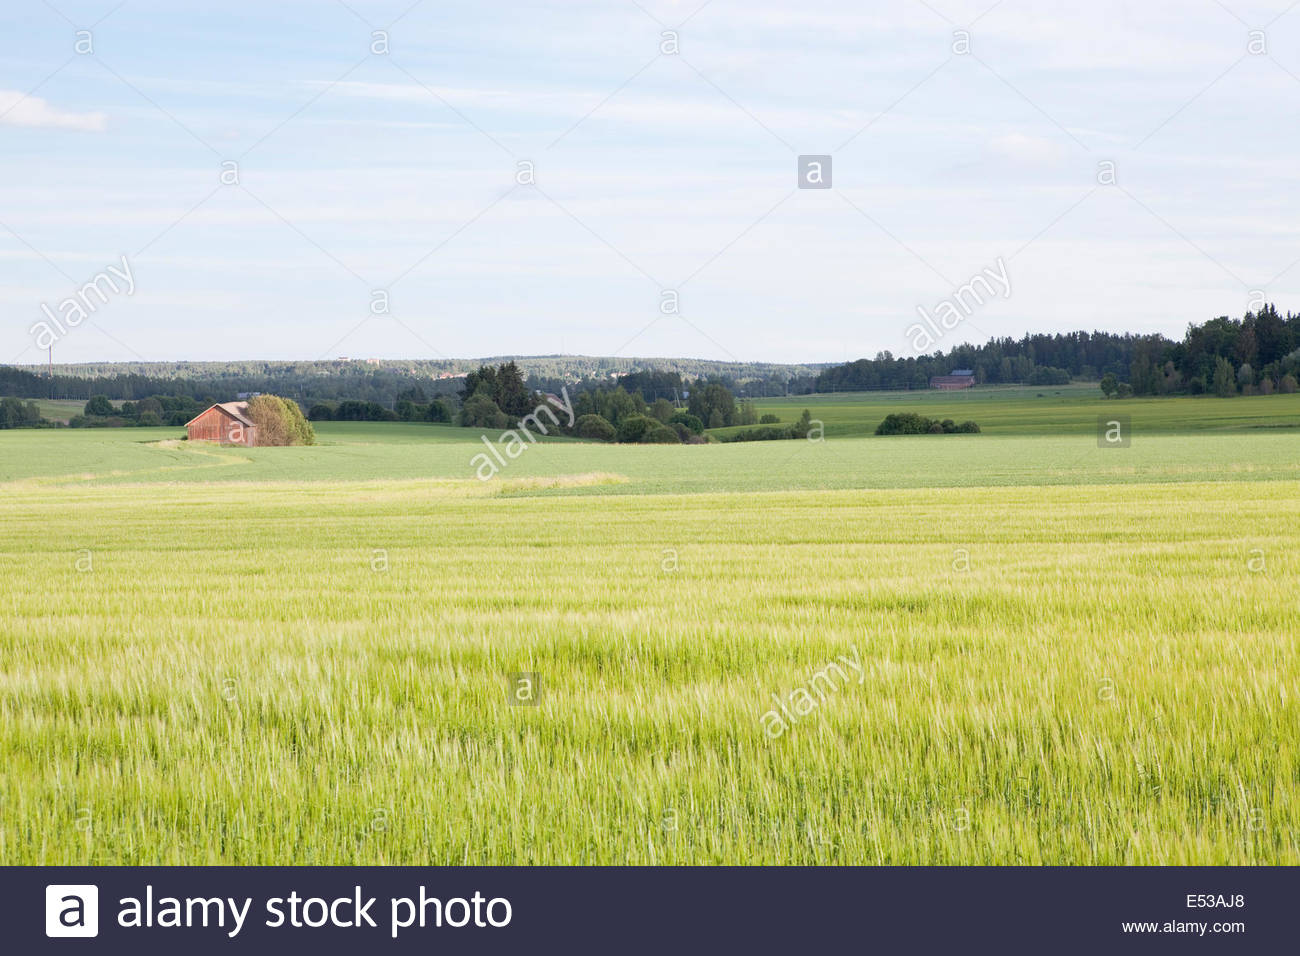 Sunny summer day in the country in Finland - Stock Image